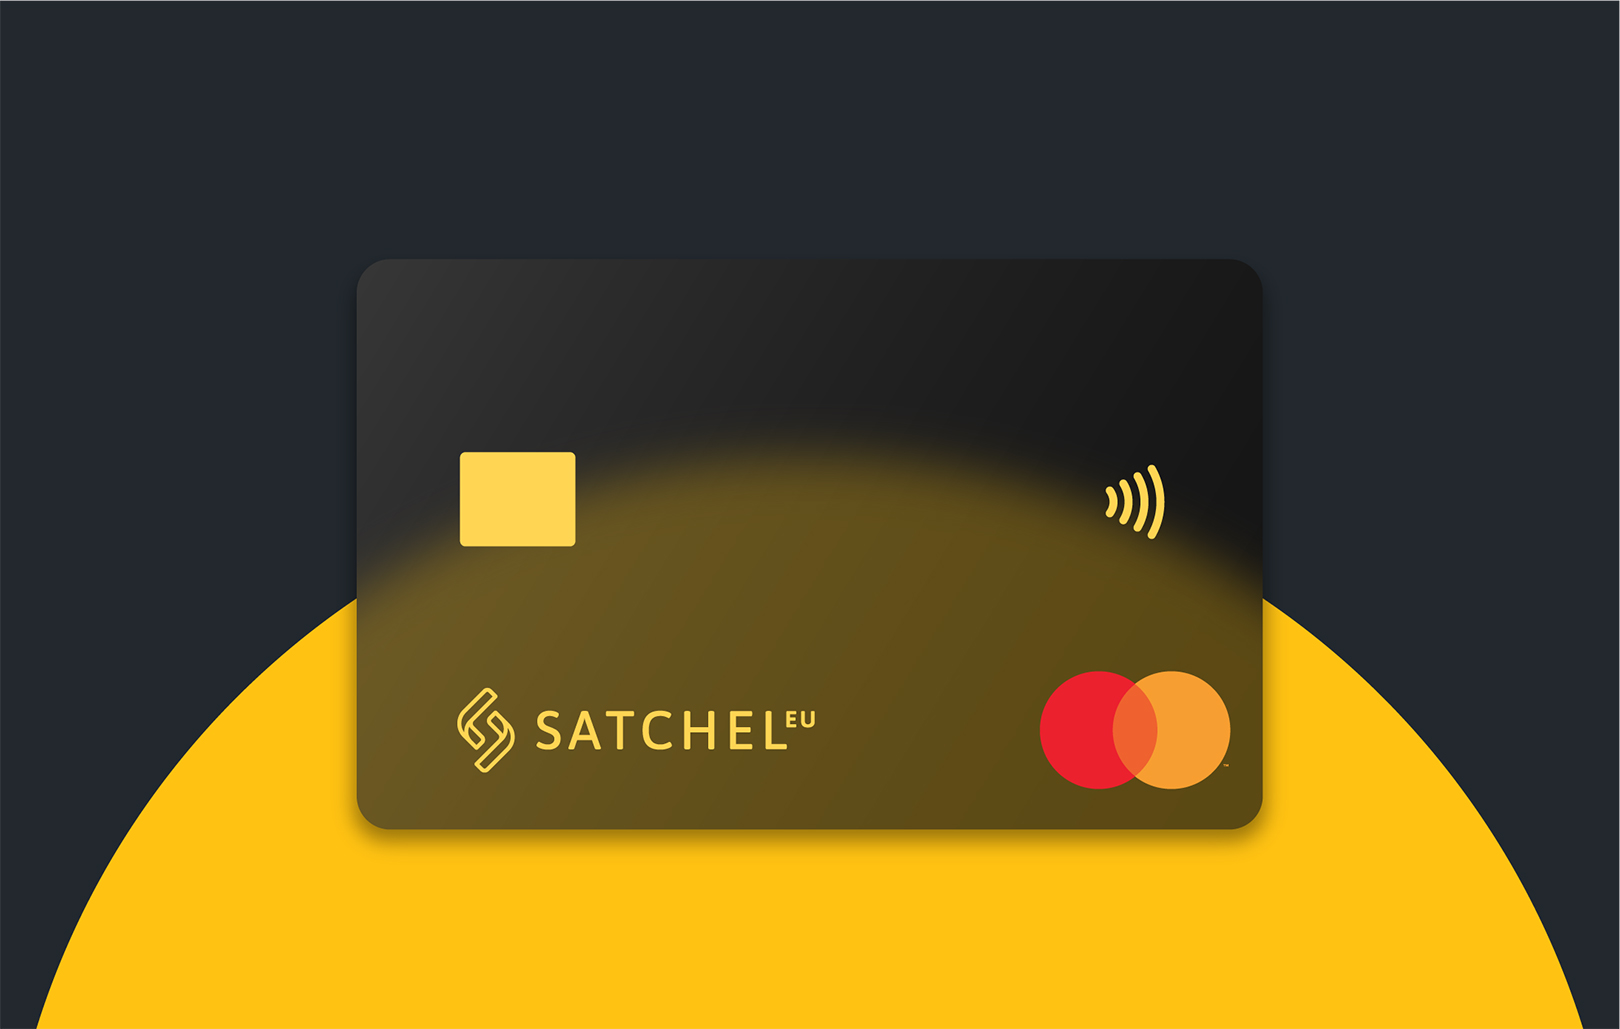 SatchelPay Virtual Cards: Power And Control